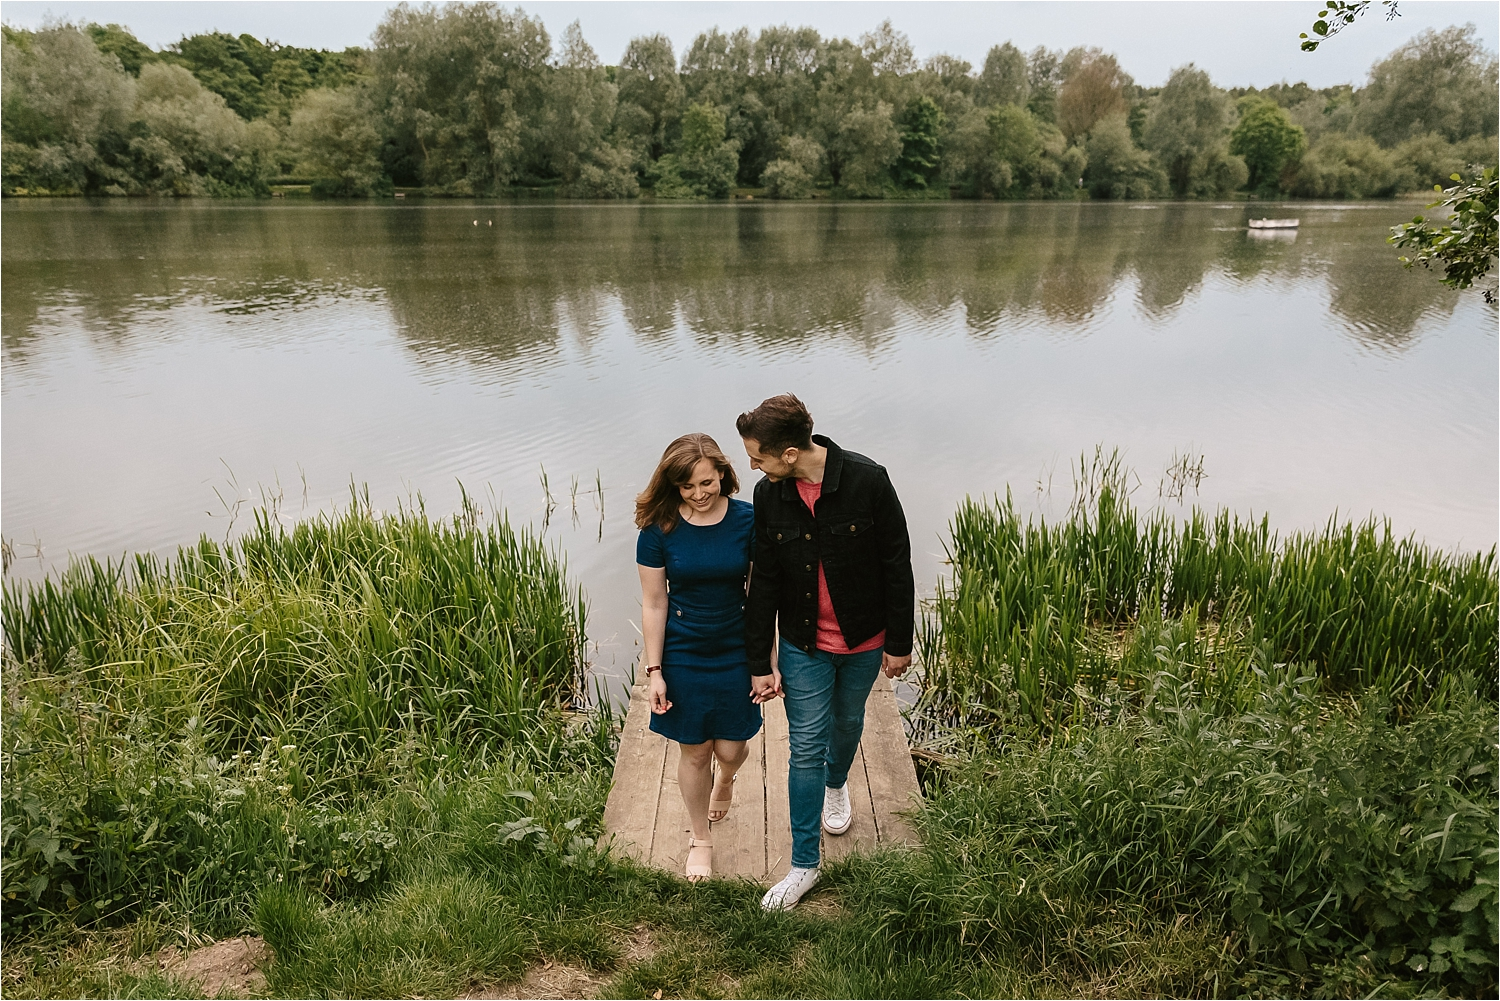 Victoria-Ben-The-West-Mill-darley-abbey-natural-relaxed-documentary-wedding-photography-photographer-Derby-Nottingham-Derbyshire-Nottinghamshire-Leicestershire-Lincolnshire-East-Midlands_0210.jpg